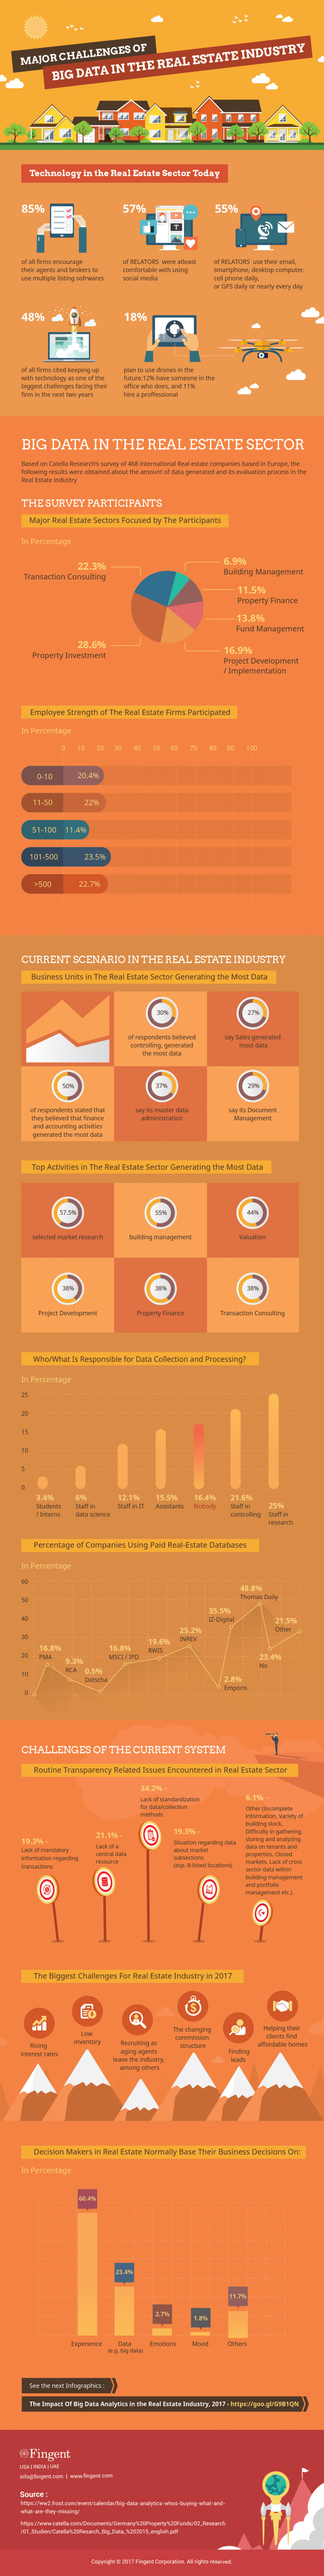 Capitalizing Big Data Opportunities: Challenges for the Real Estate Industry - Infographic